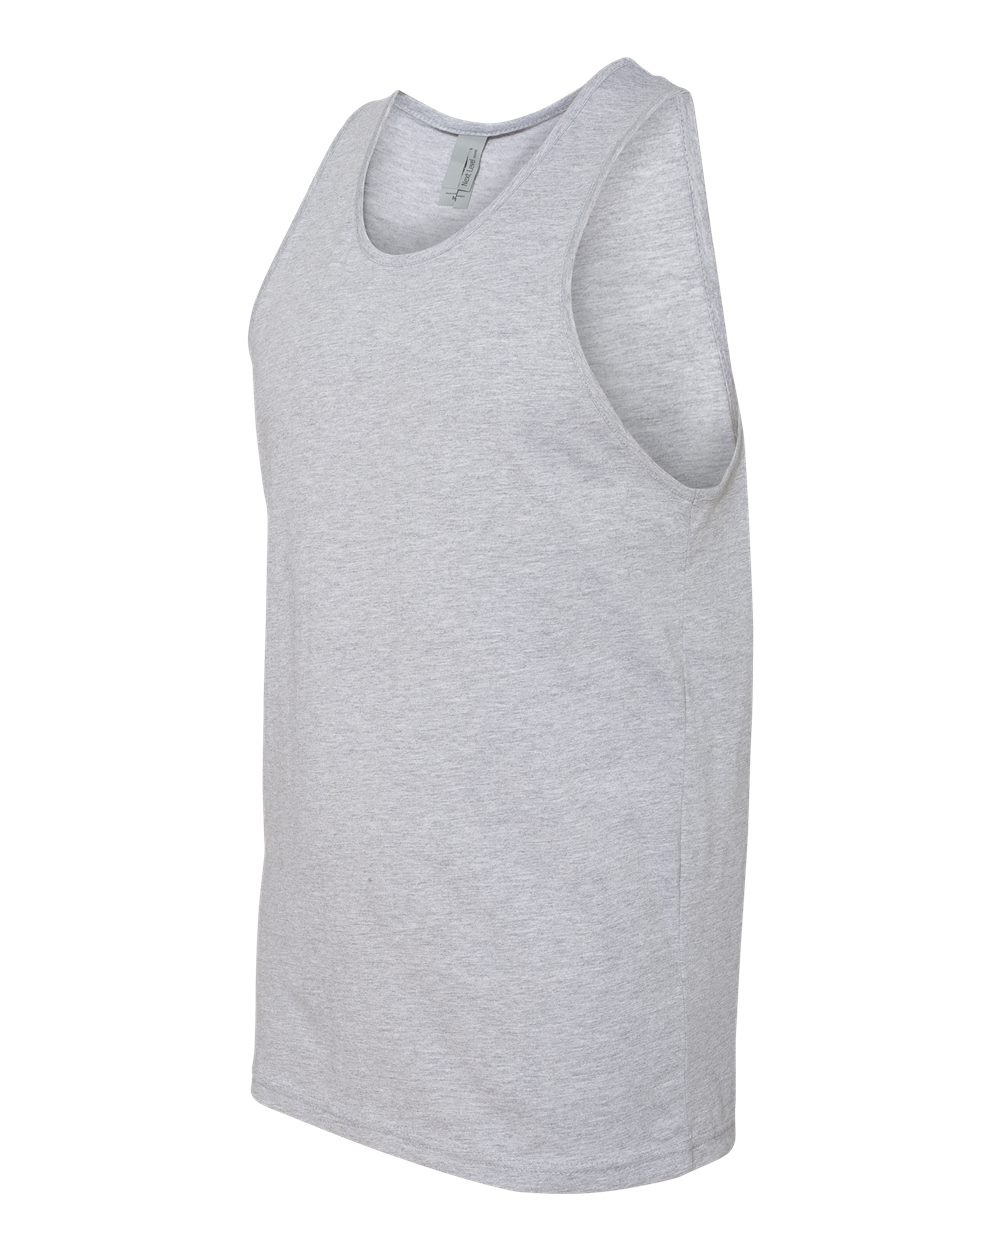 click to view Heather Grey(90/10)